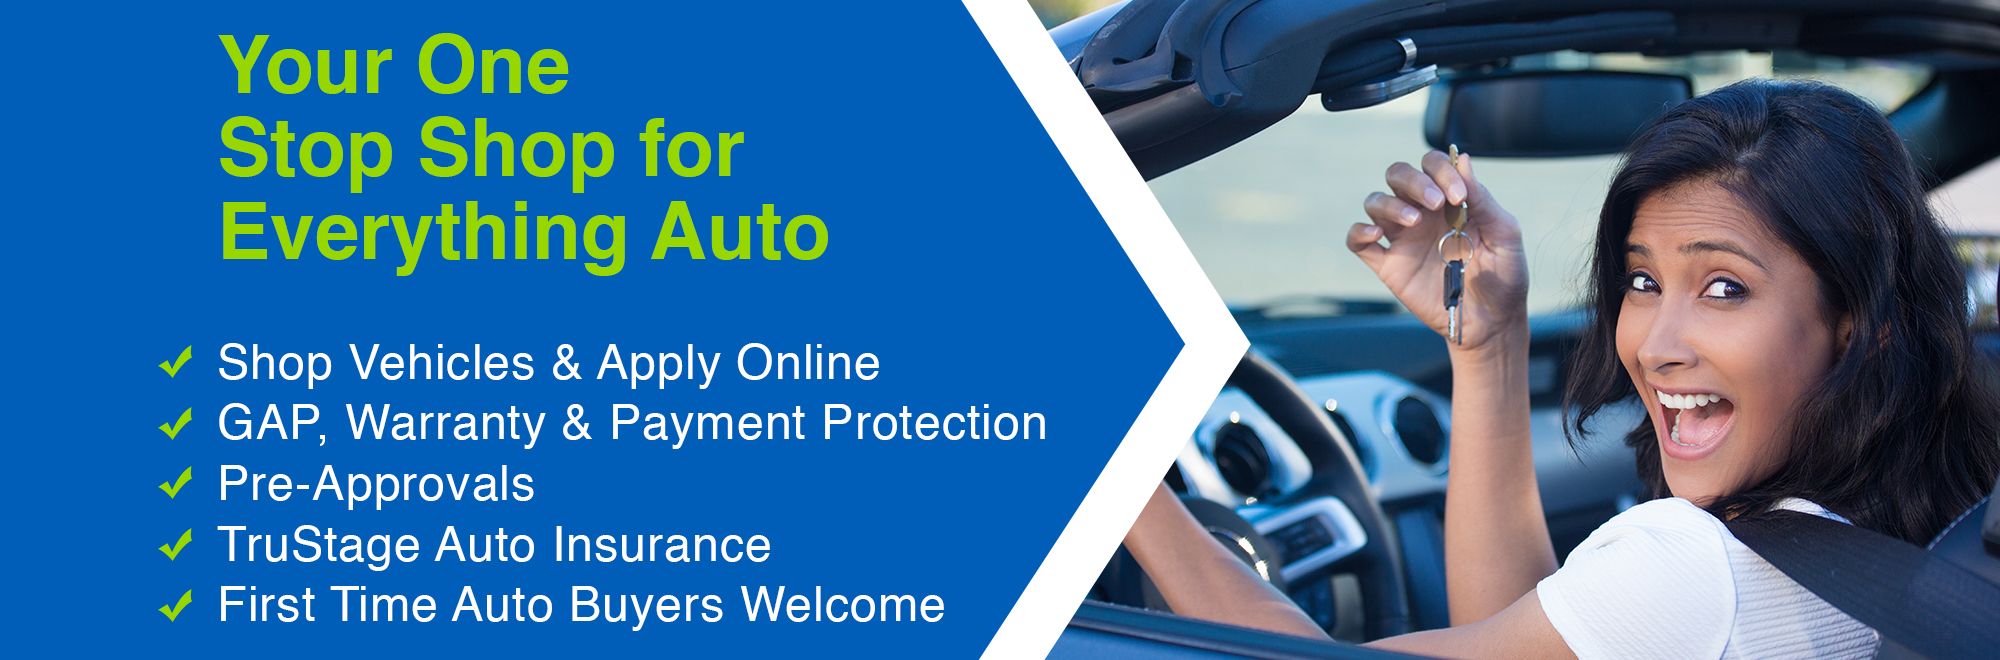 SACFCU is your one-stop shop for everything auto. You can shop vehicles and apply online, get GAP, Warranty, & Payment Protection, Pre-Approvals, Tru-Stage Auto Insurance, & more! First time car buyers are always welcome.